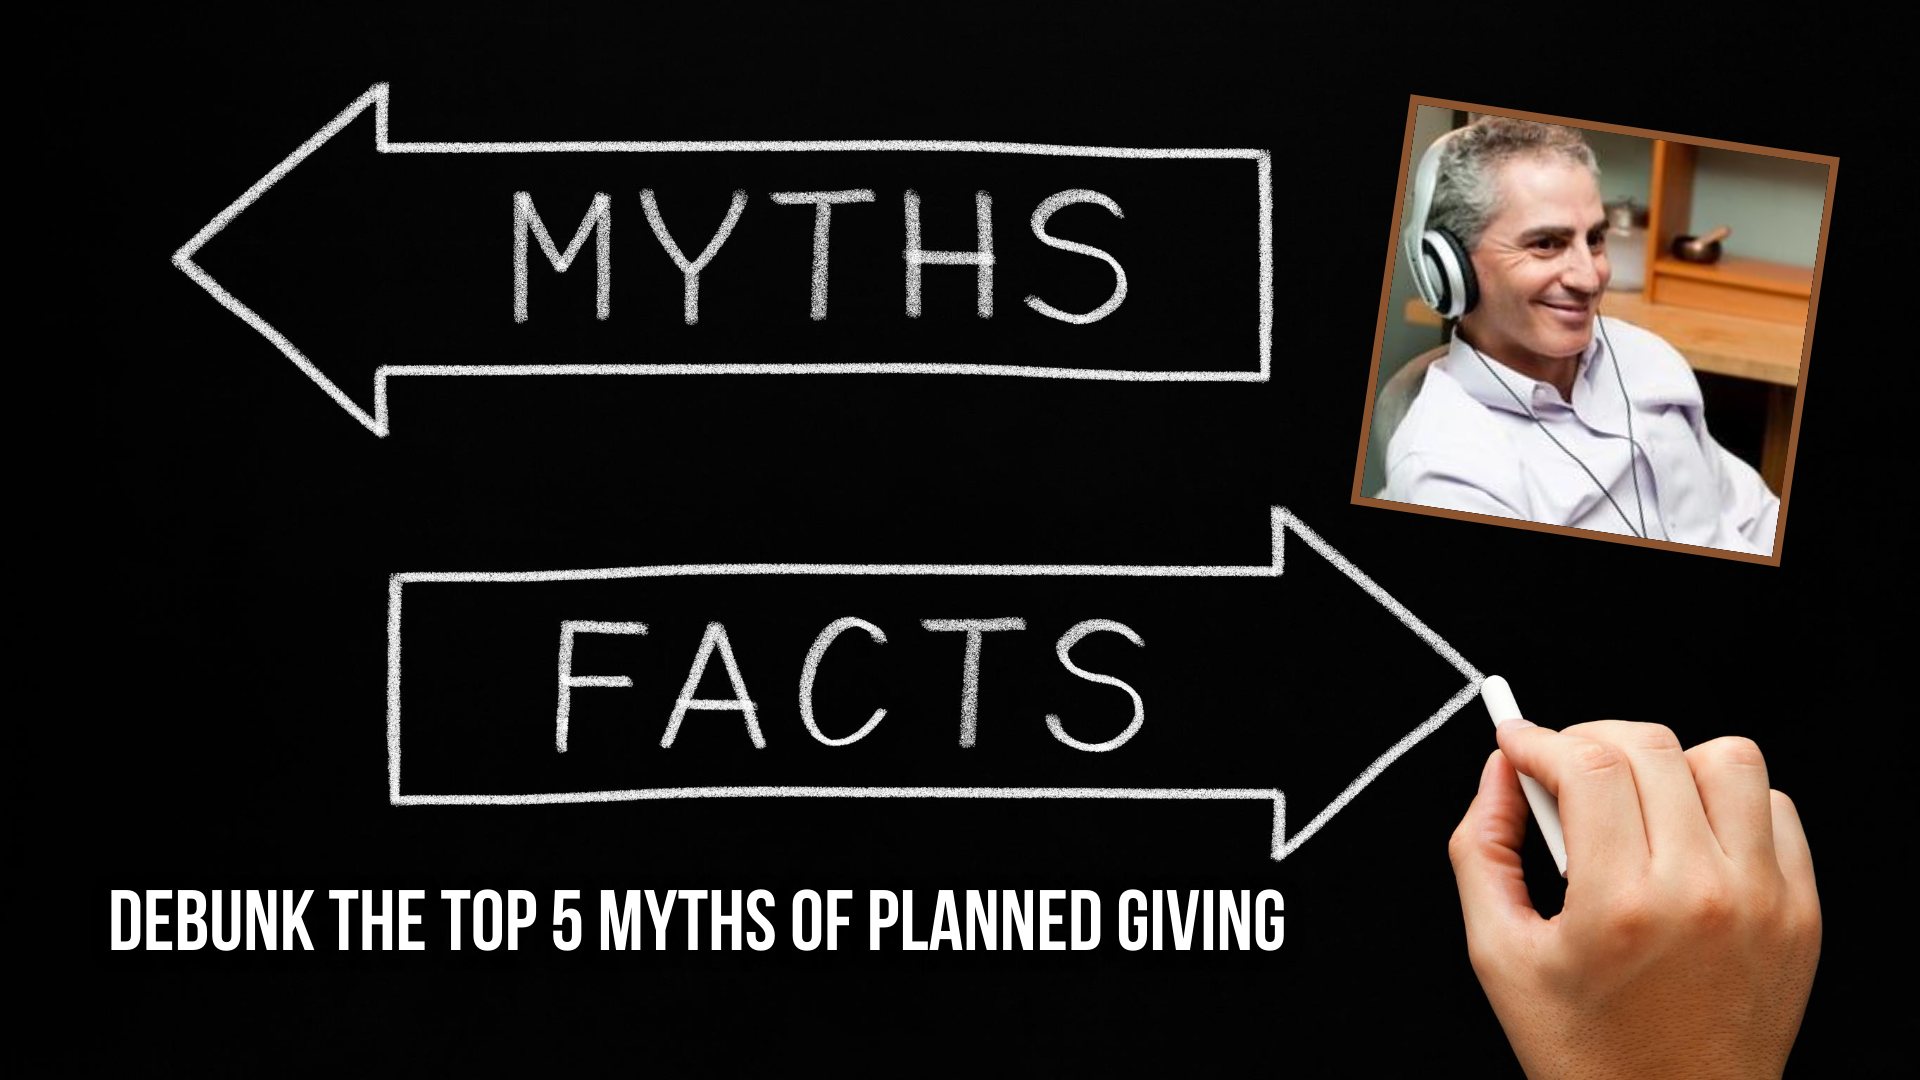 [Zoom Meeting] Debunk the Top 5 Myths of Planned Giving